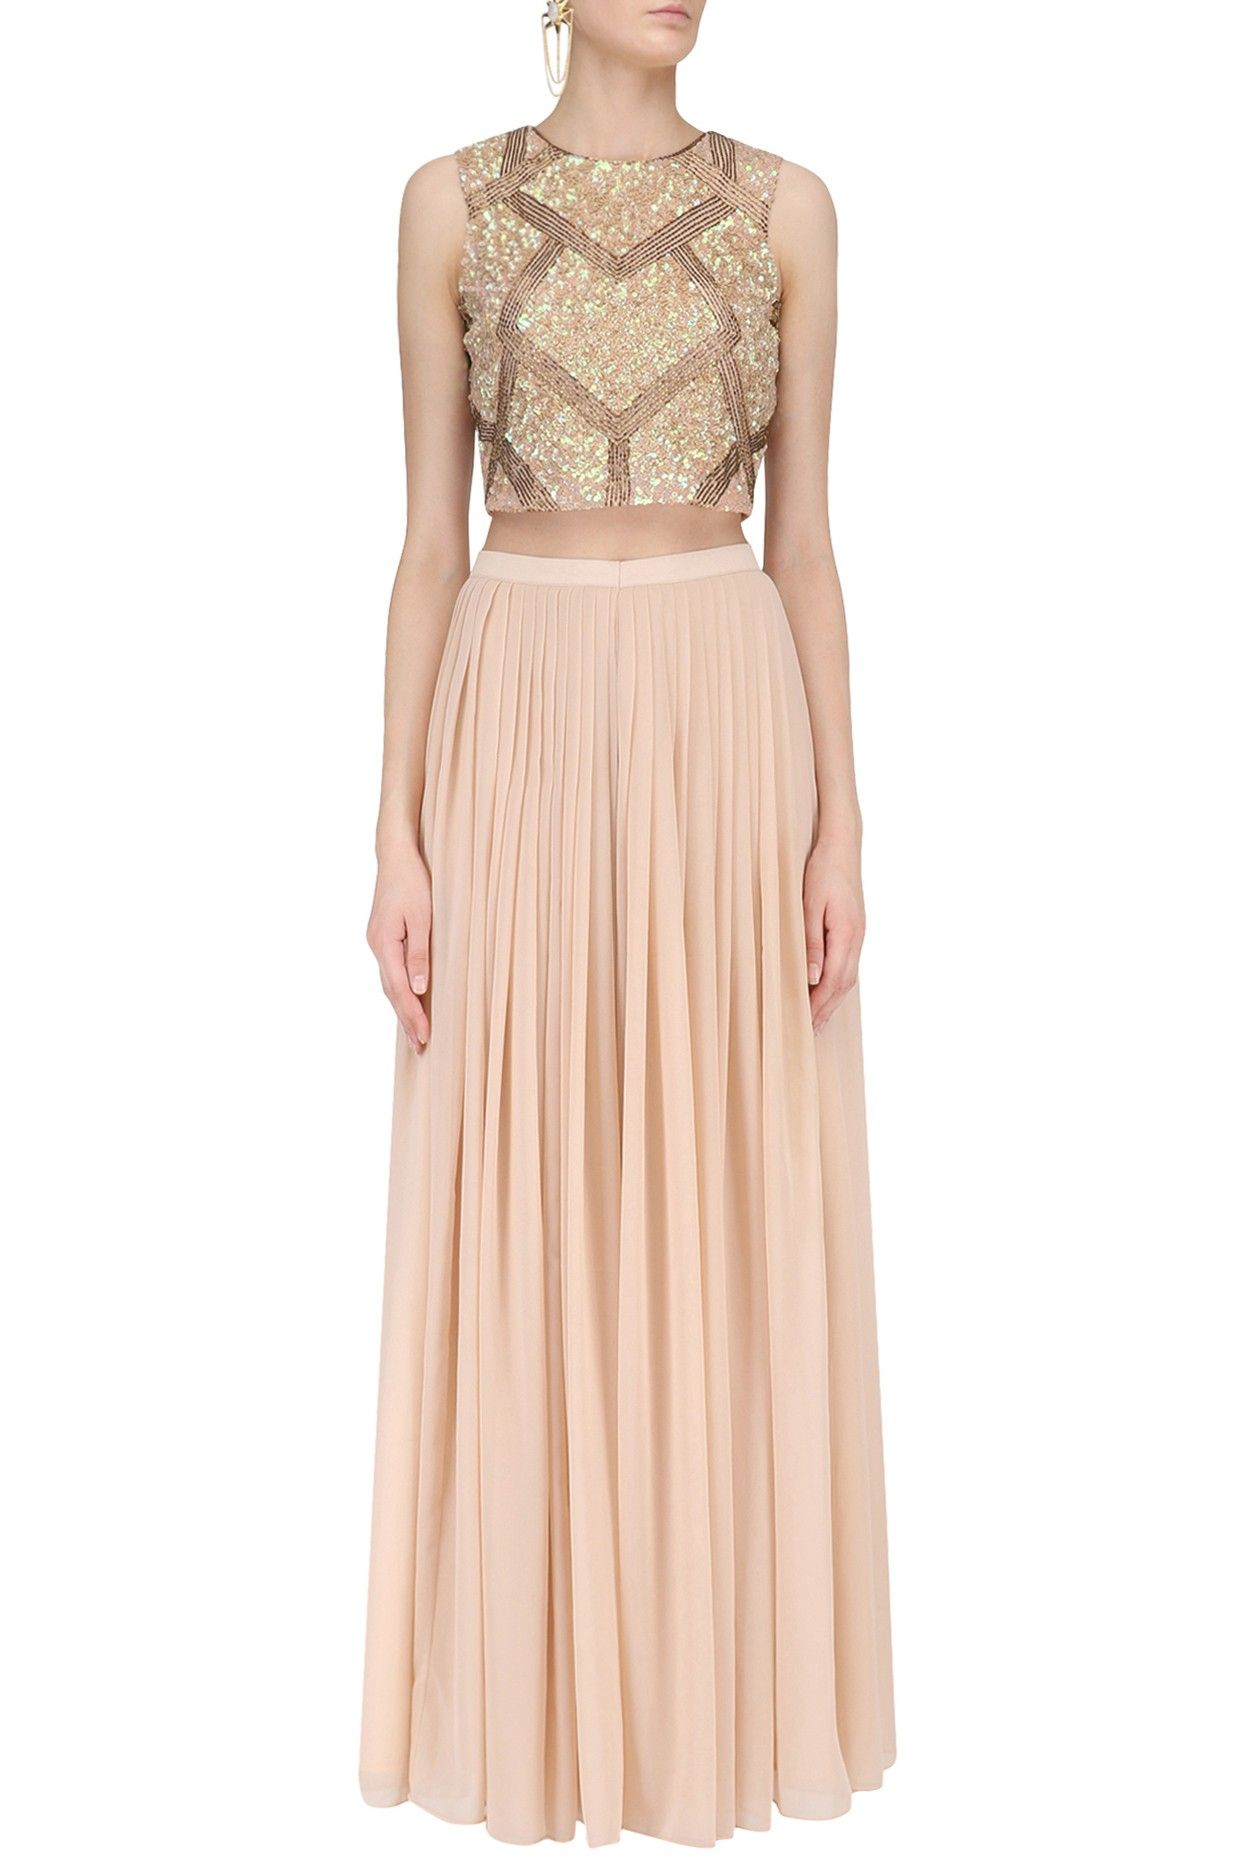 c9aca751442fb RUHMAHSA Peach Sequins Embroidered Crop Top with Palazzo Pants  Georgette   ethnic  traditional  pernia  perniaspopupshop  ethnicwear  indianwear   shopnow   ...